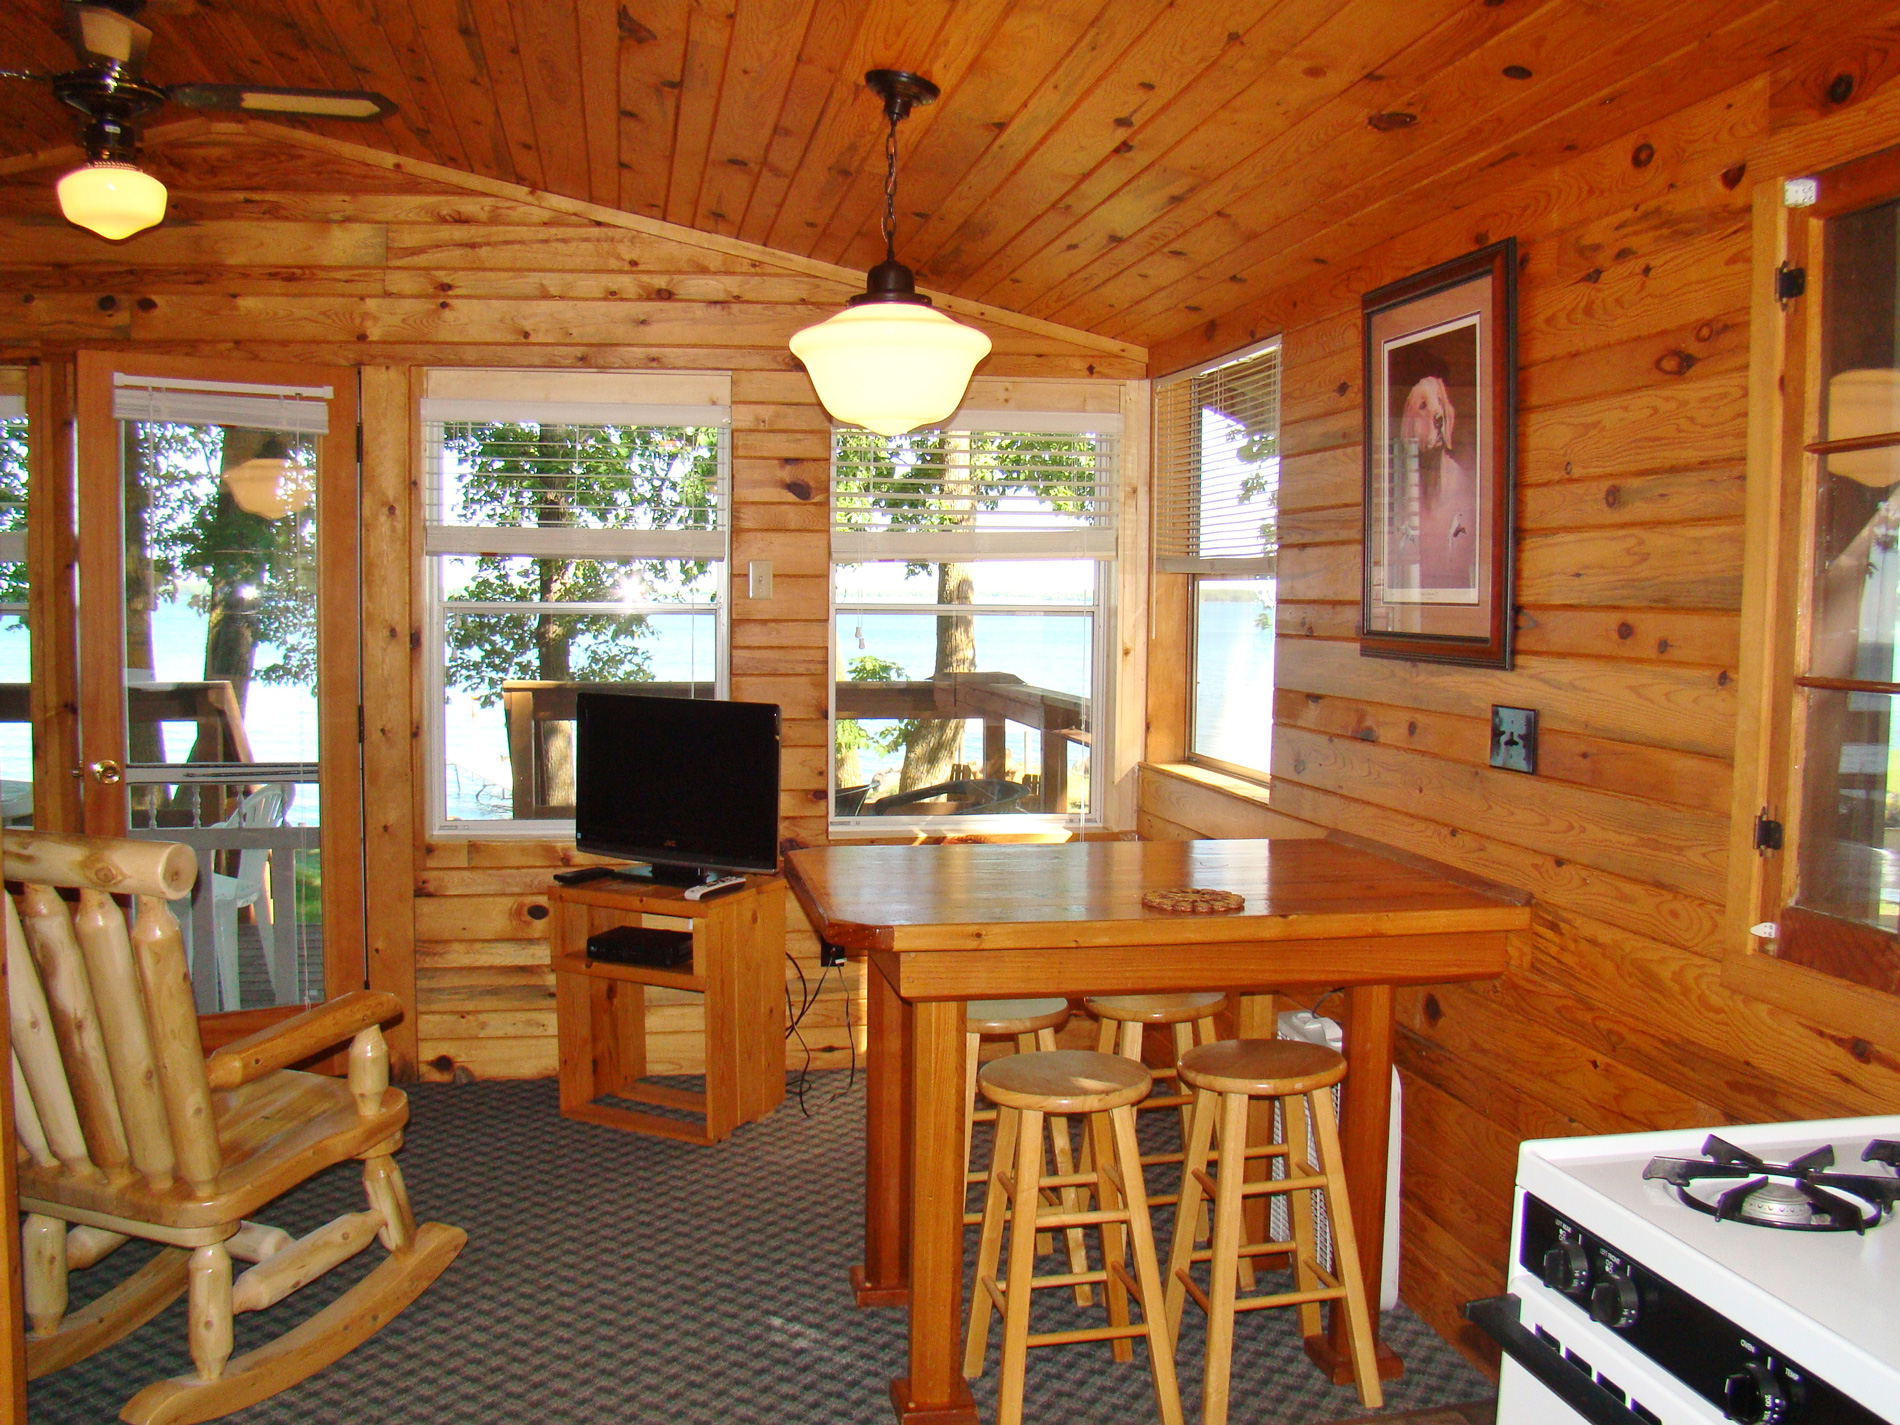 house rentals lodge x cabins lodging cabin all american porch powder